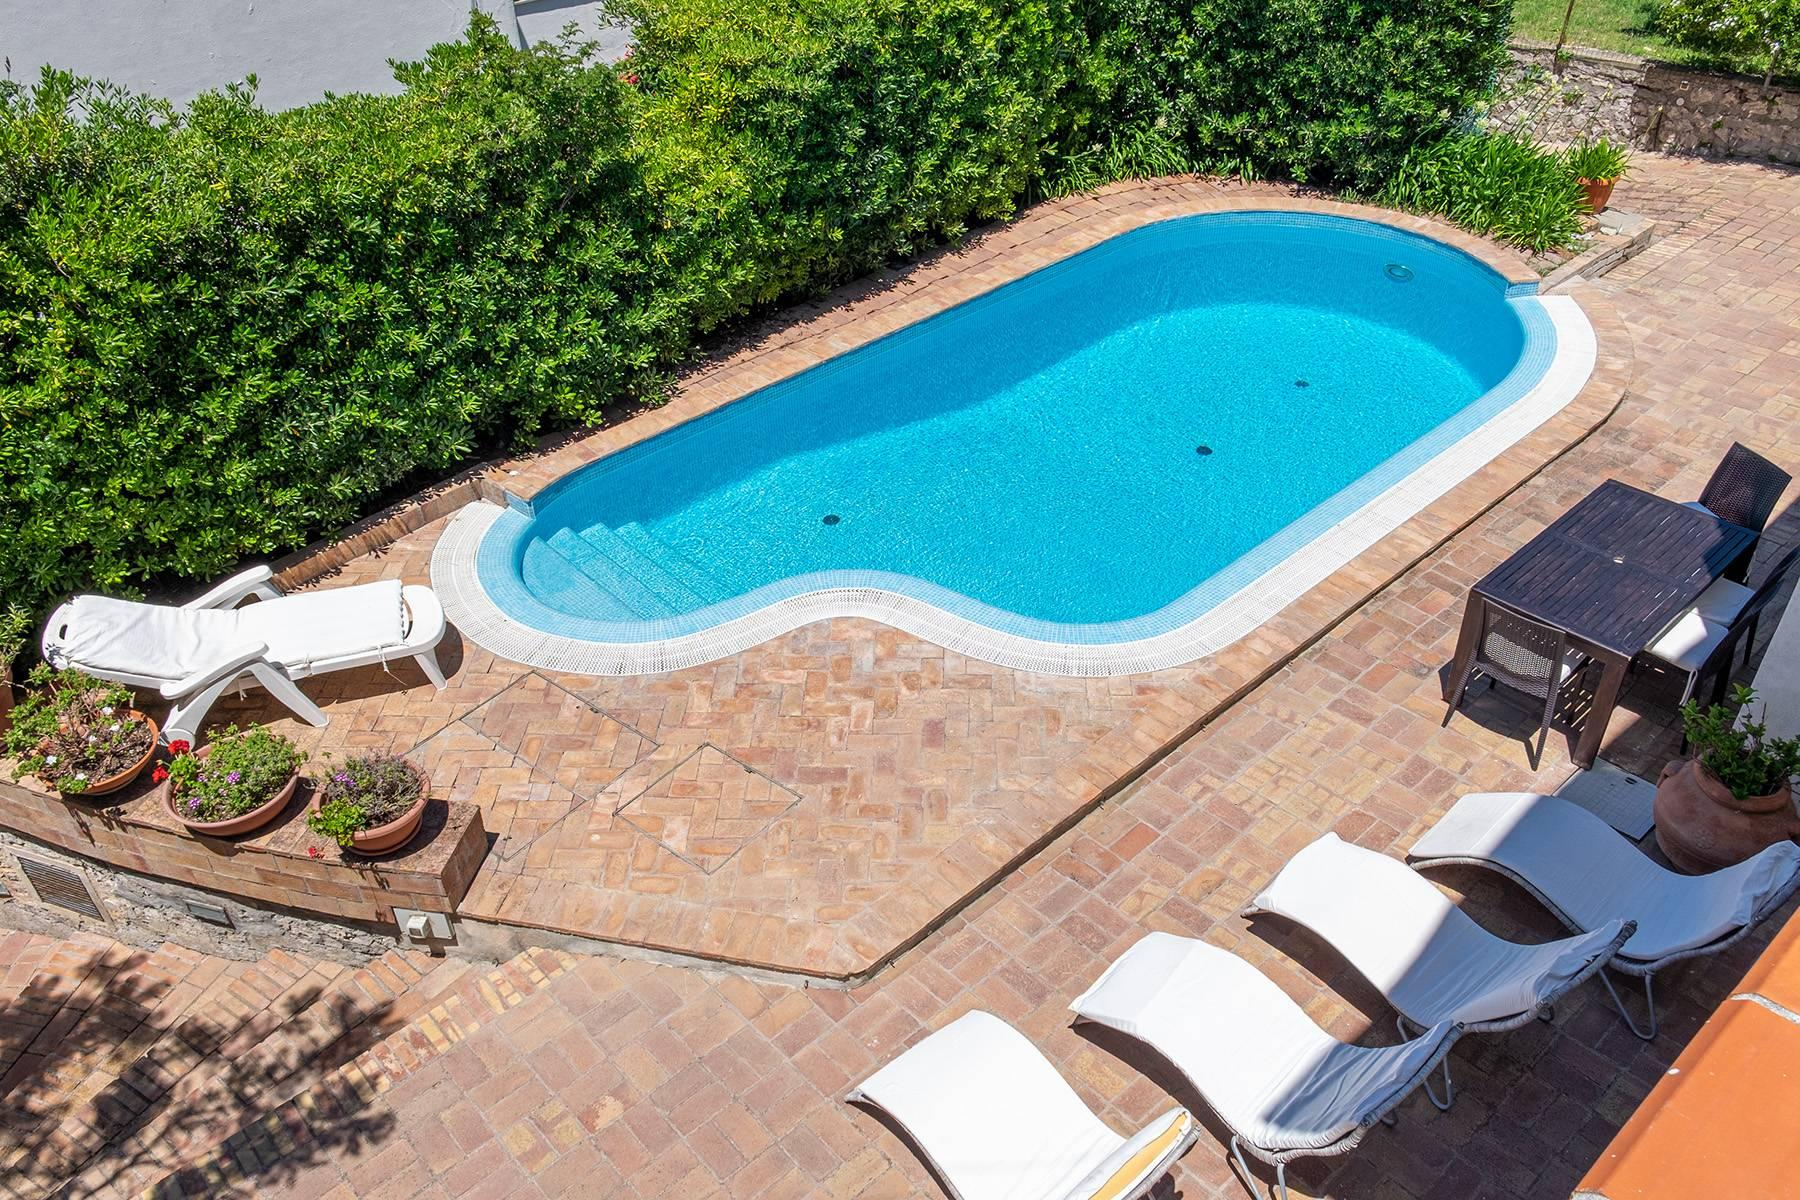 Charming villa with swimming pool in Anacapri - 20